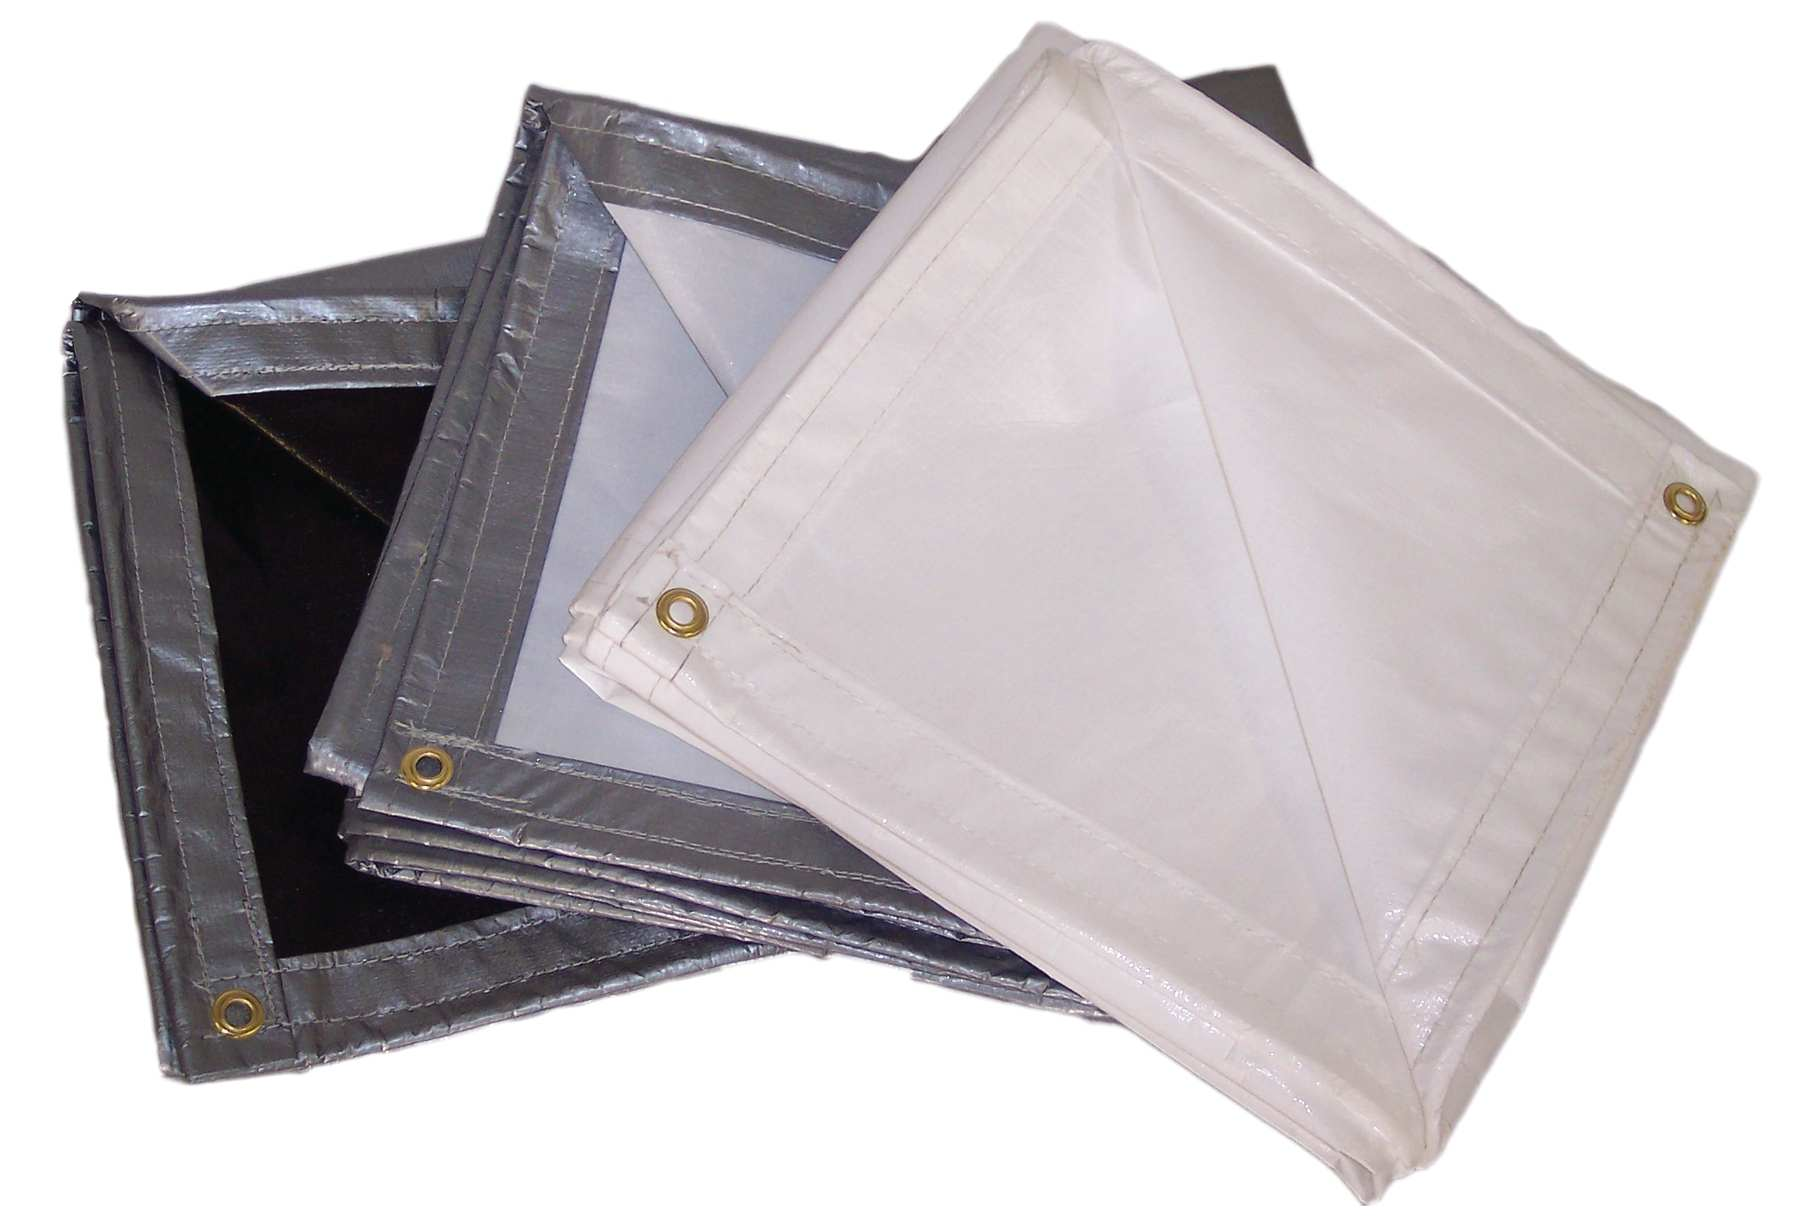 Heavy Duty Reinforced Polyethylene Tarps – 12 mil., 7 oz./sq. Yd.; Size (ft.) 12 x 24